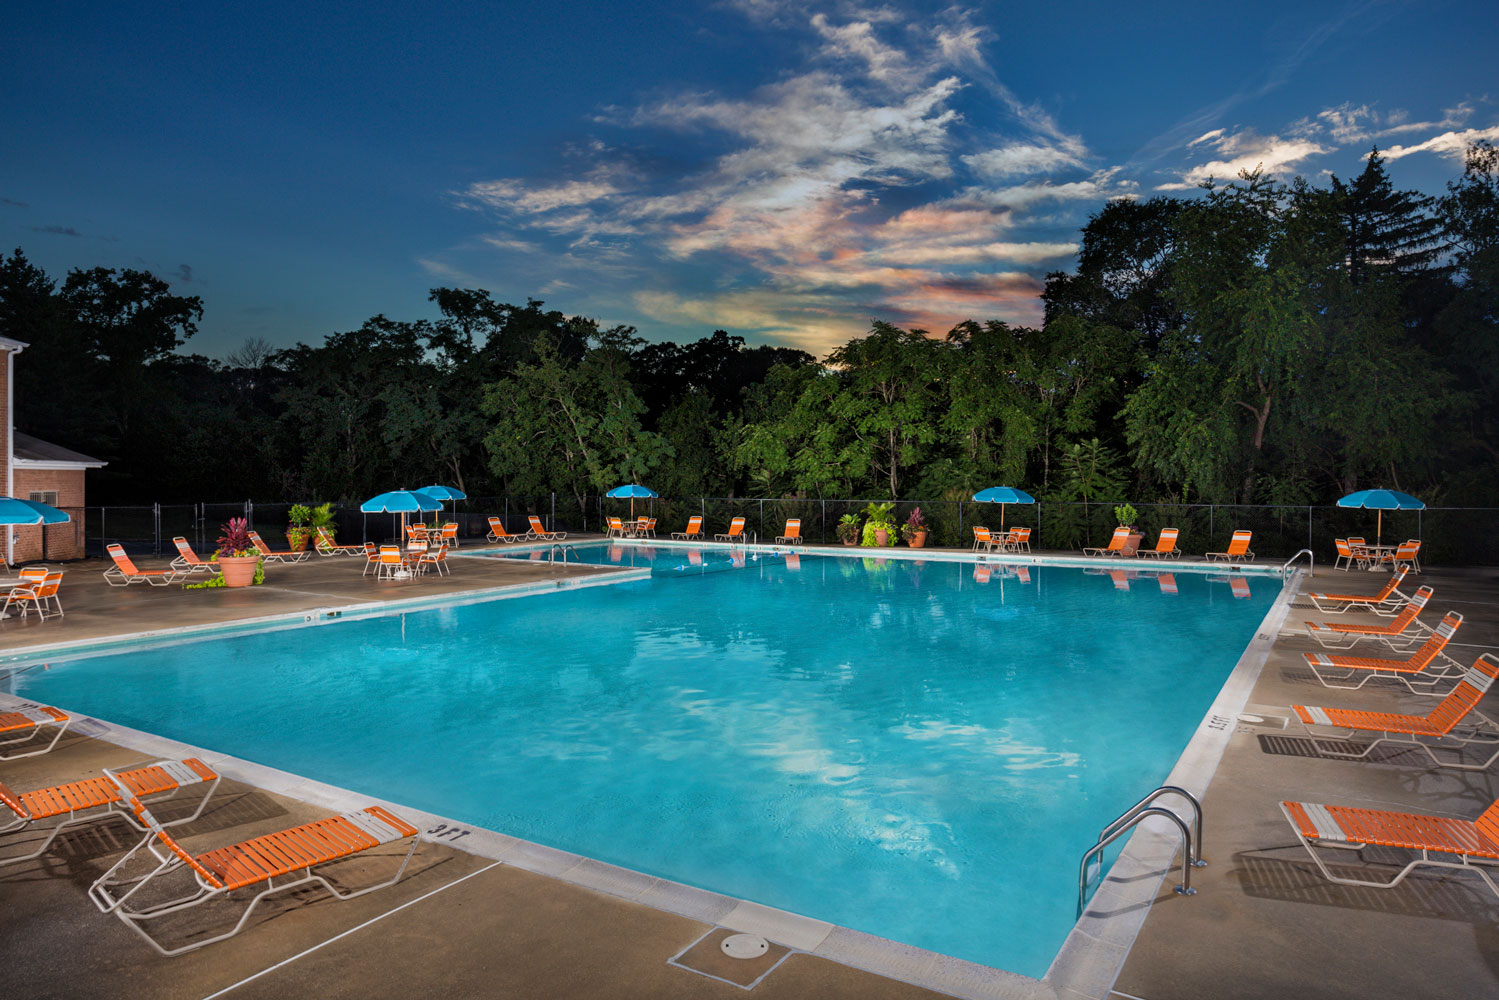 Refreshing swimming pool at Whitehall Square Apartments in Suitland, MD